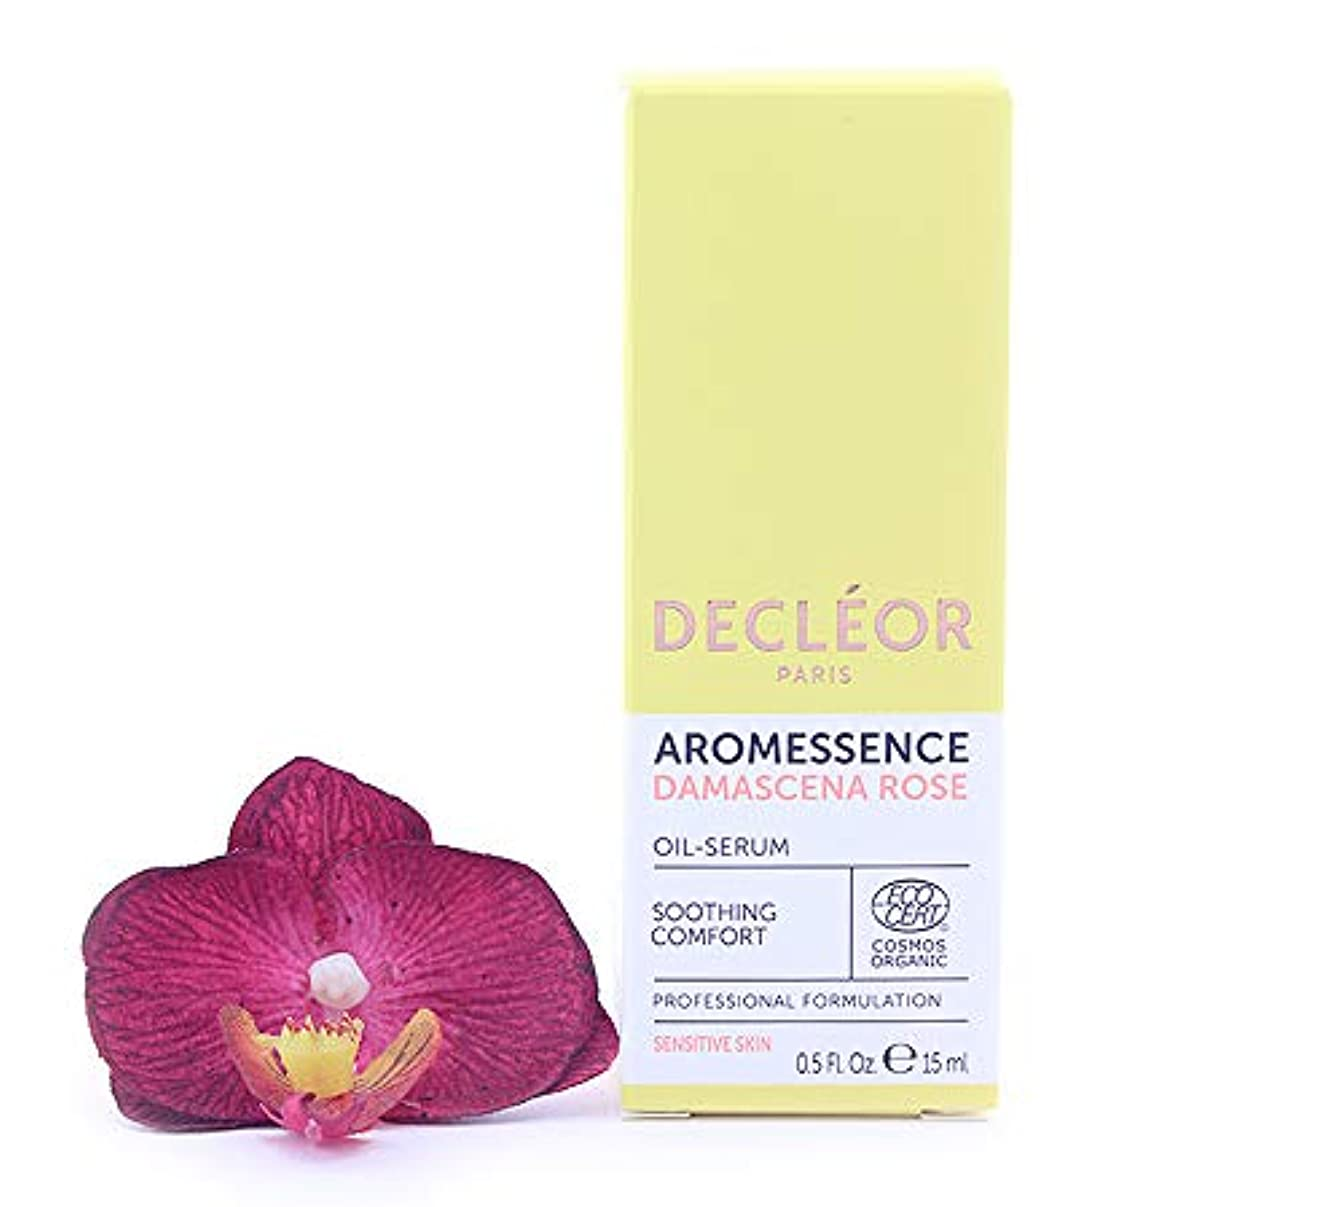 狂った劇的月曜デクレオール Aromessence Rose D'Orient (Damascena Rose) Soothing Comfort Oil Serum 15ml/0.5oz並行輸入品